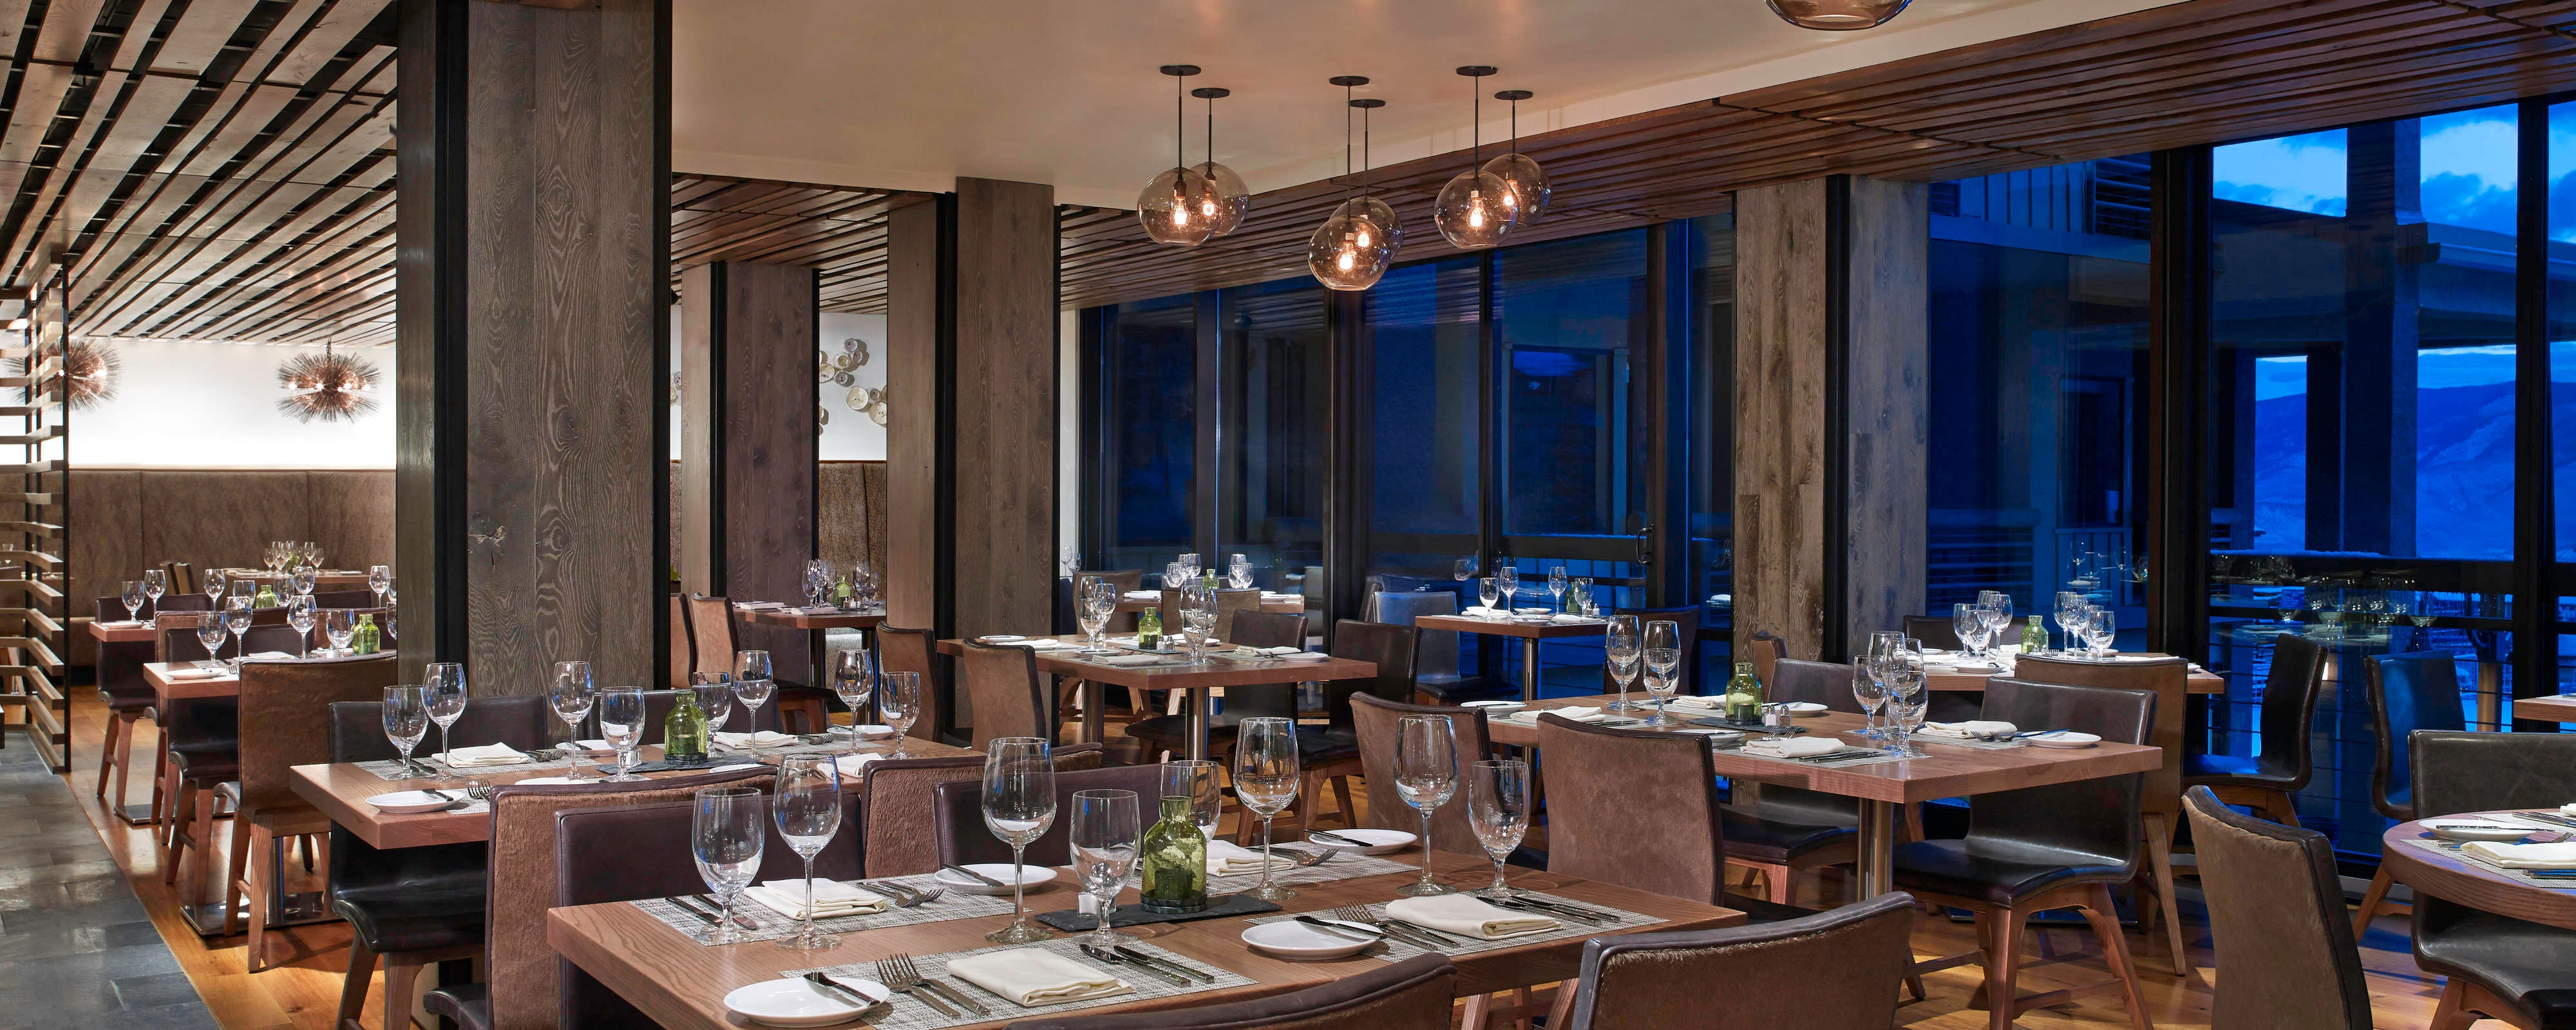 Snowmass Kitchen, comedor